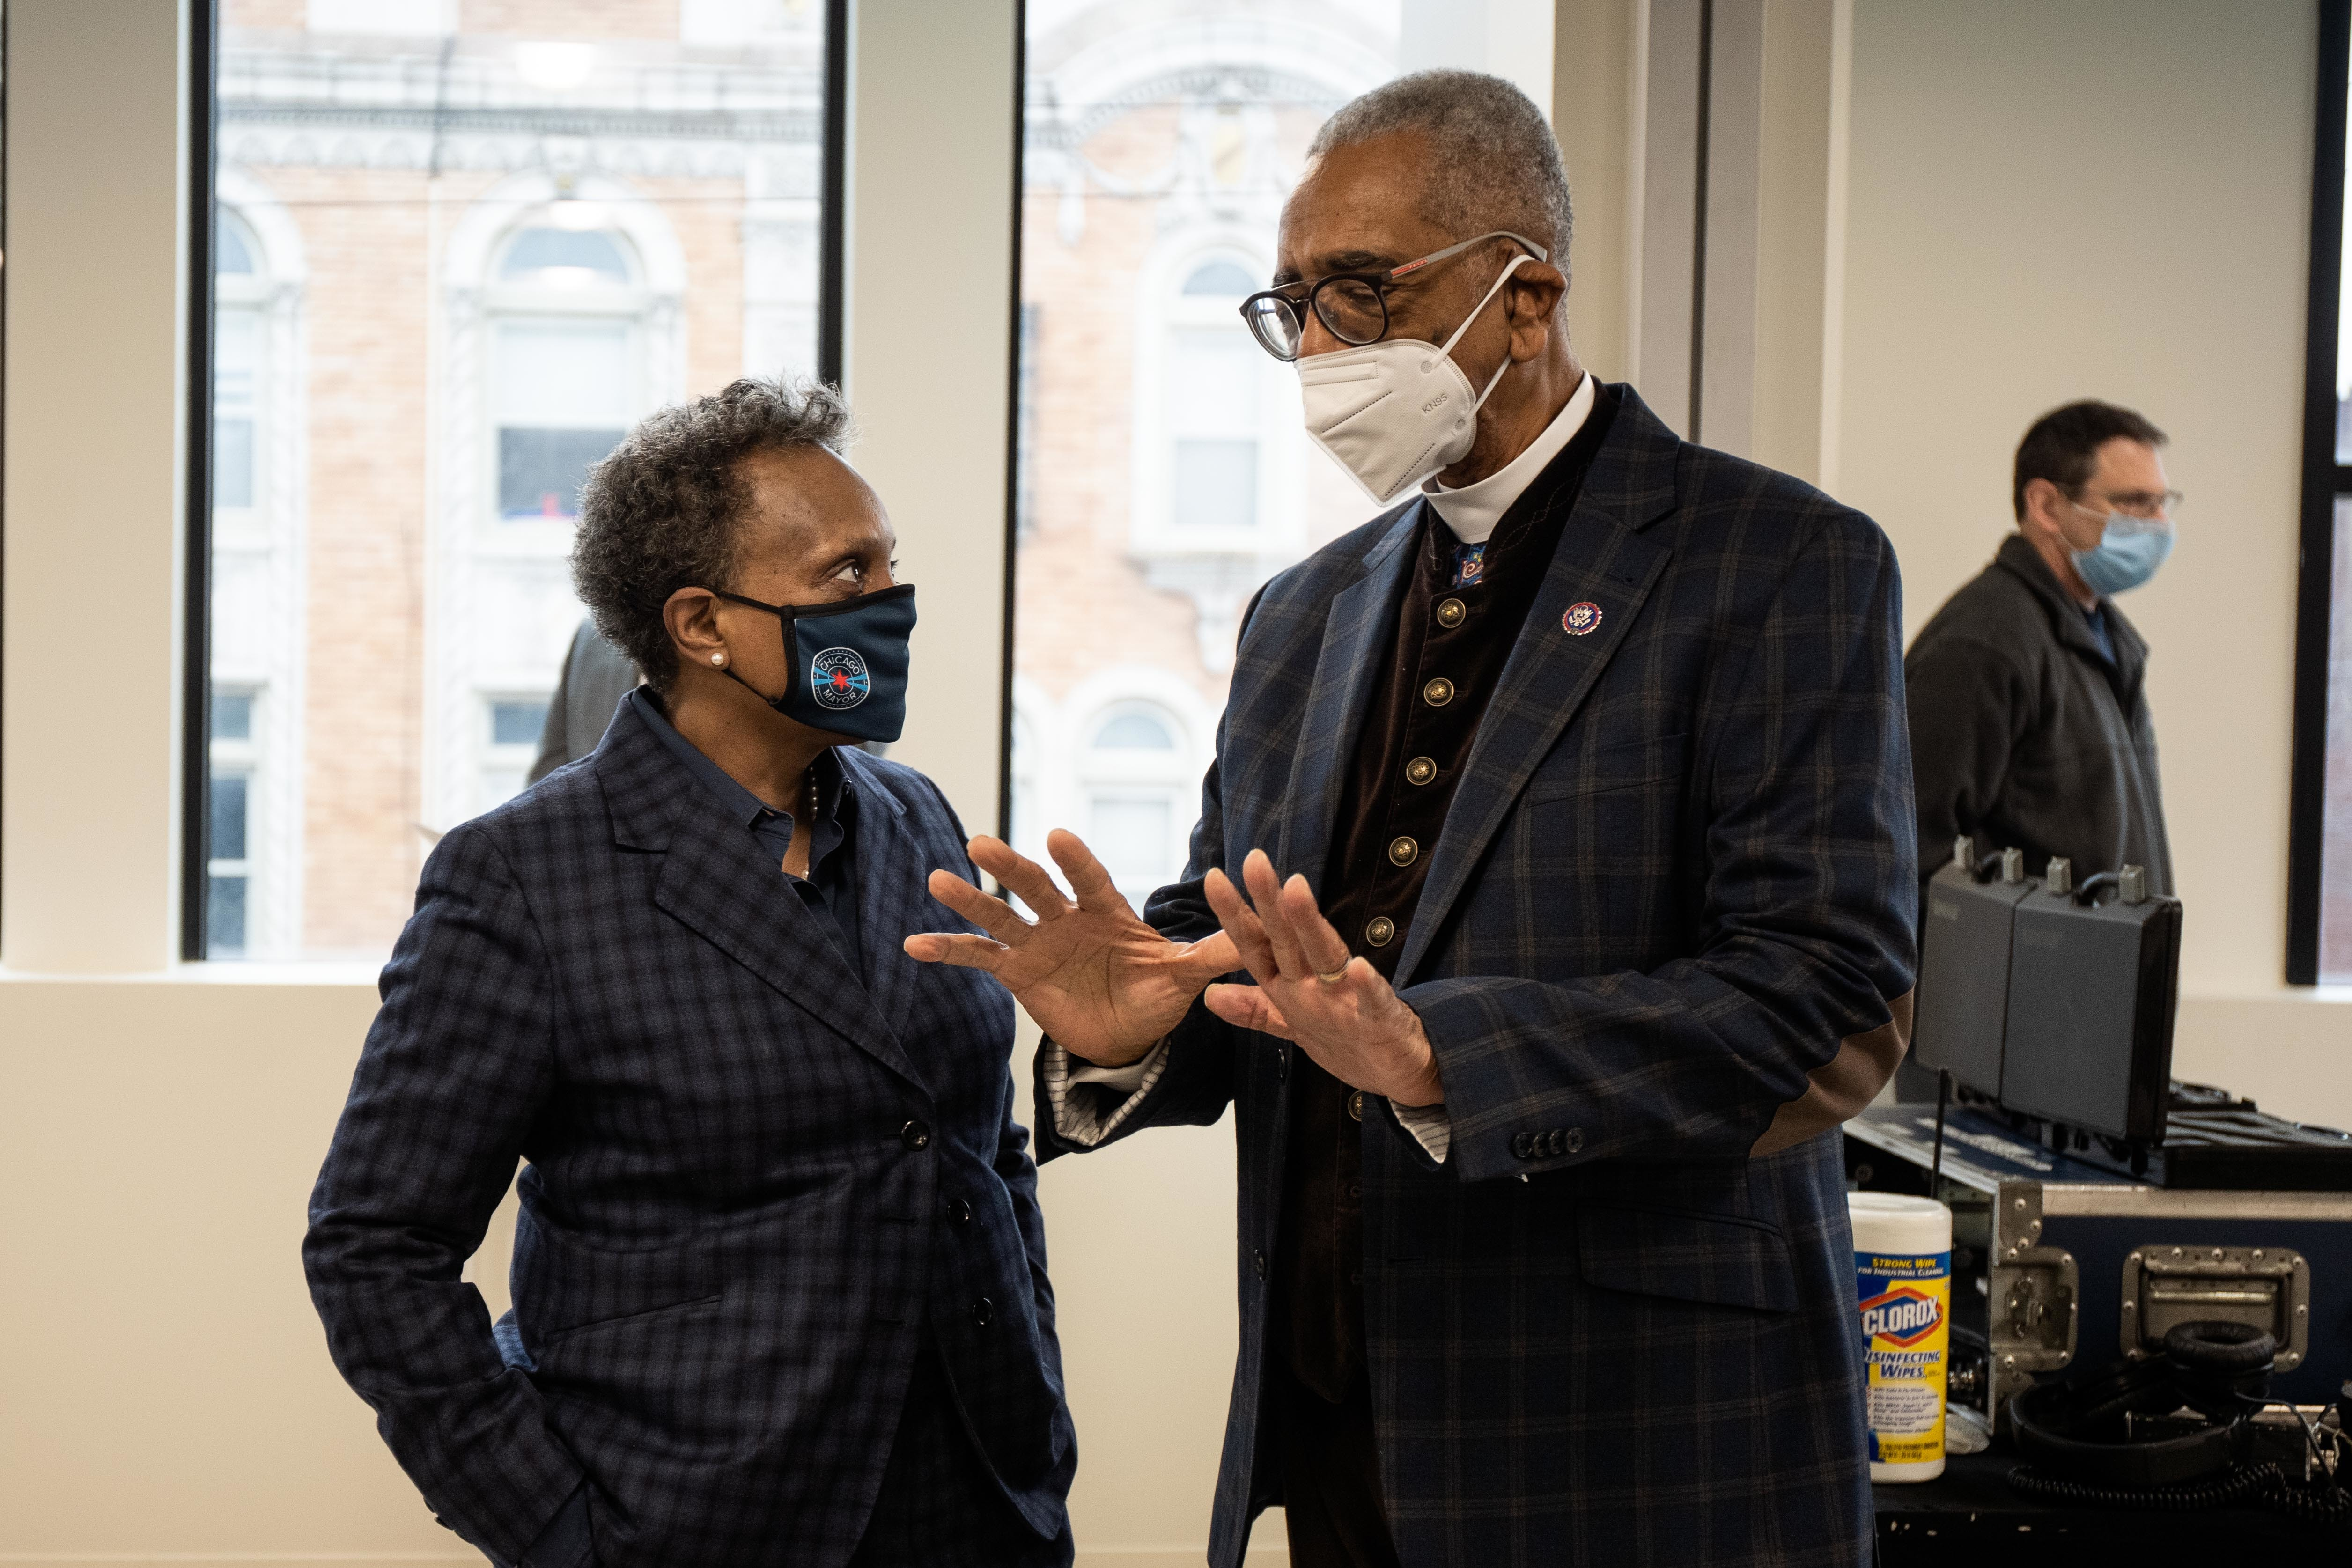 Chicago Mayor Lori Lightfoot speaks to U.S. Rep. Bobby Rush at the opening of the Chatham Education and Workforce Center Tuesday morning, Jan. 19, 2021.